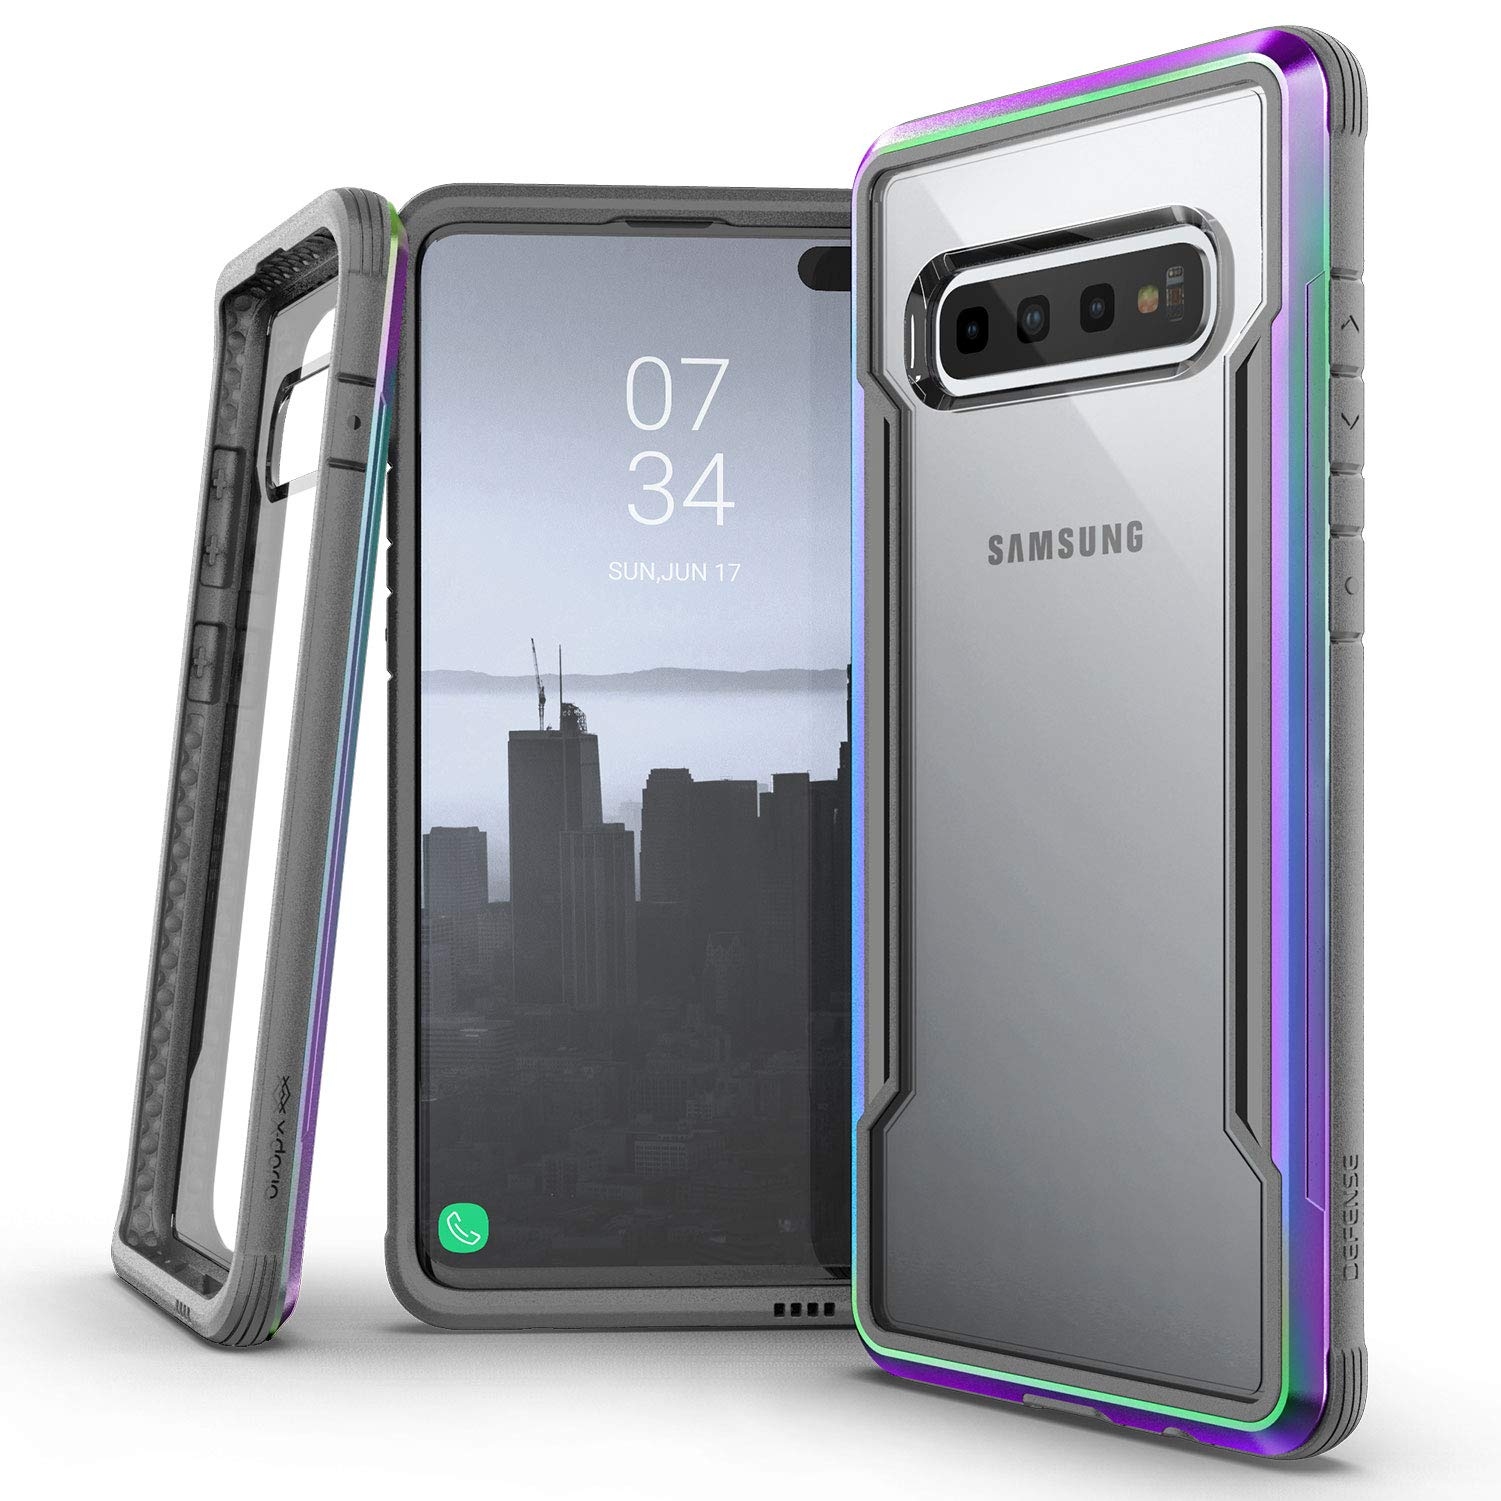 X-Doria Defense Shield Series, Samsung Galaxy S10 Plus Phone Case - Military Grade Drop Tested, Anodized Aluminum, TPU, and Polycarbonate Protective Case for Samsung Galaxy S10 Plus, (Iridescent)